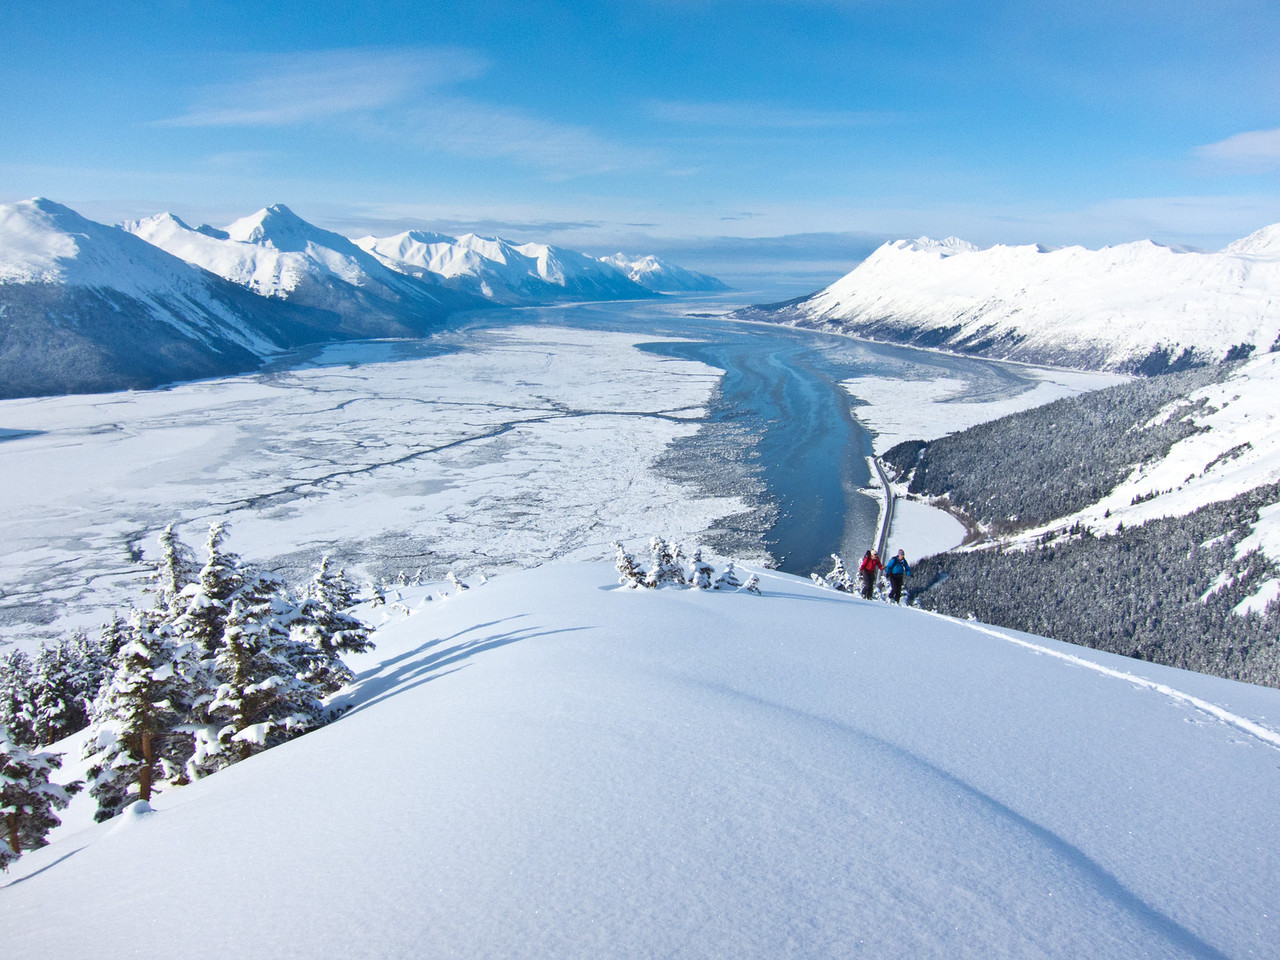 """Overlooking turnagain pass on the way to ski """"buns of steel"""""""